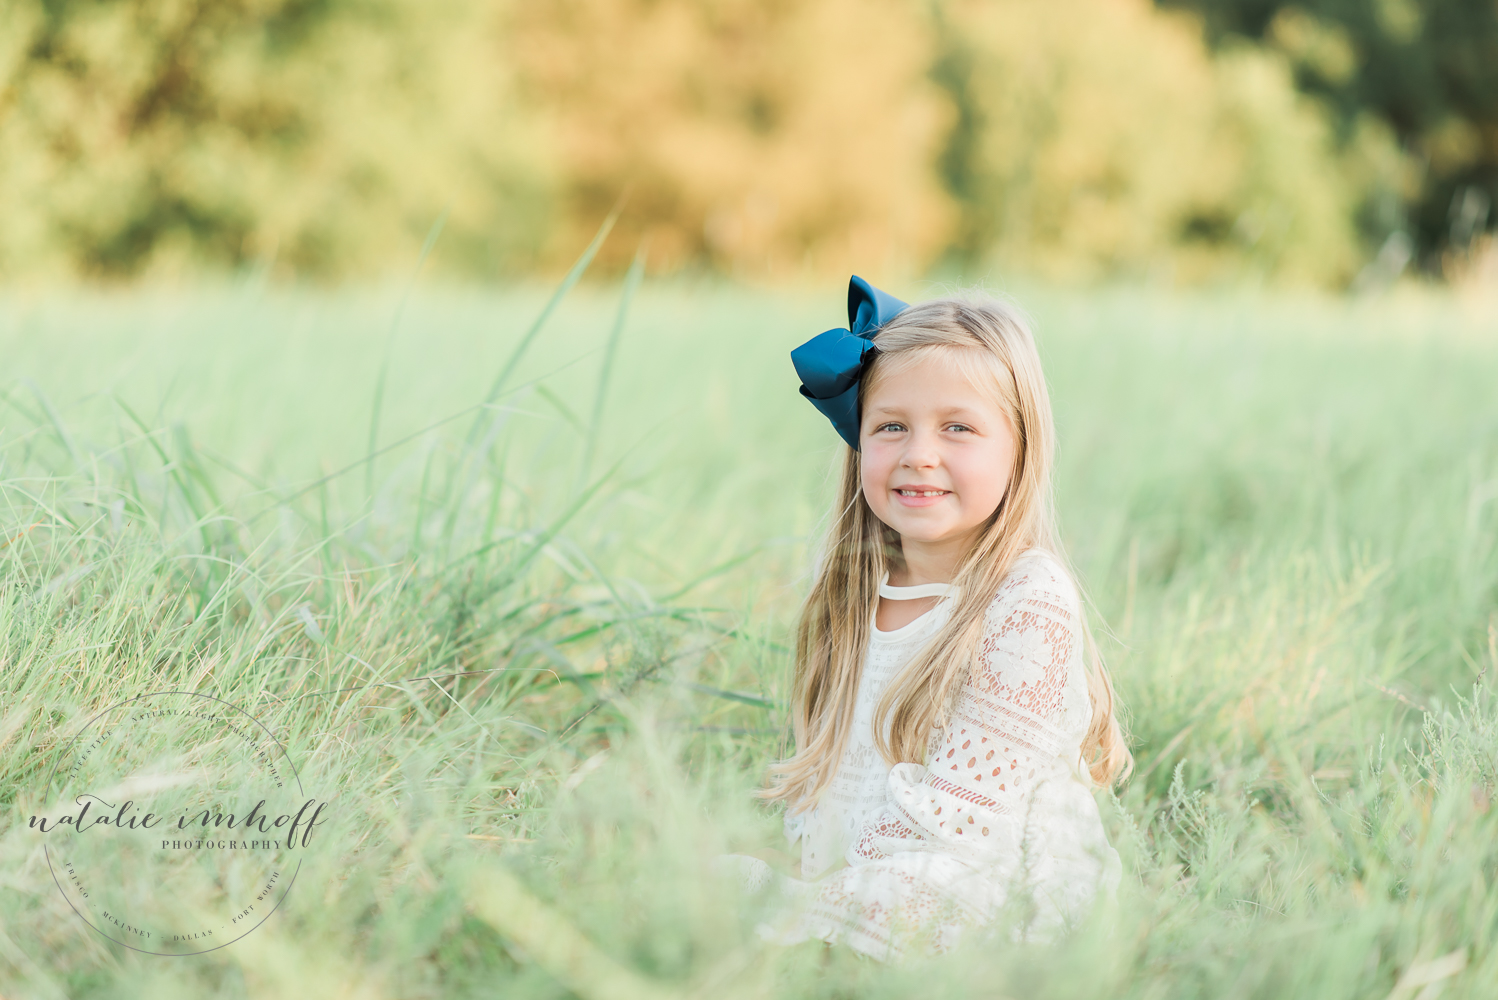 Natalie Imhoff Photography - Frisco Family Photography - Family Photos - Frisco Texas  - 2017 - Web-32.JPG